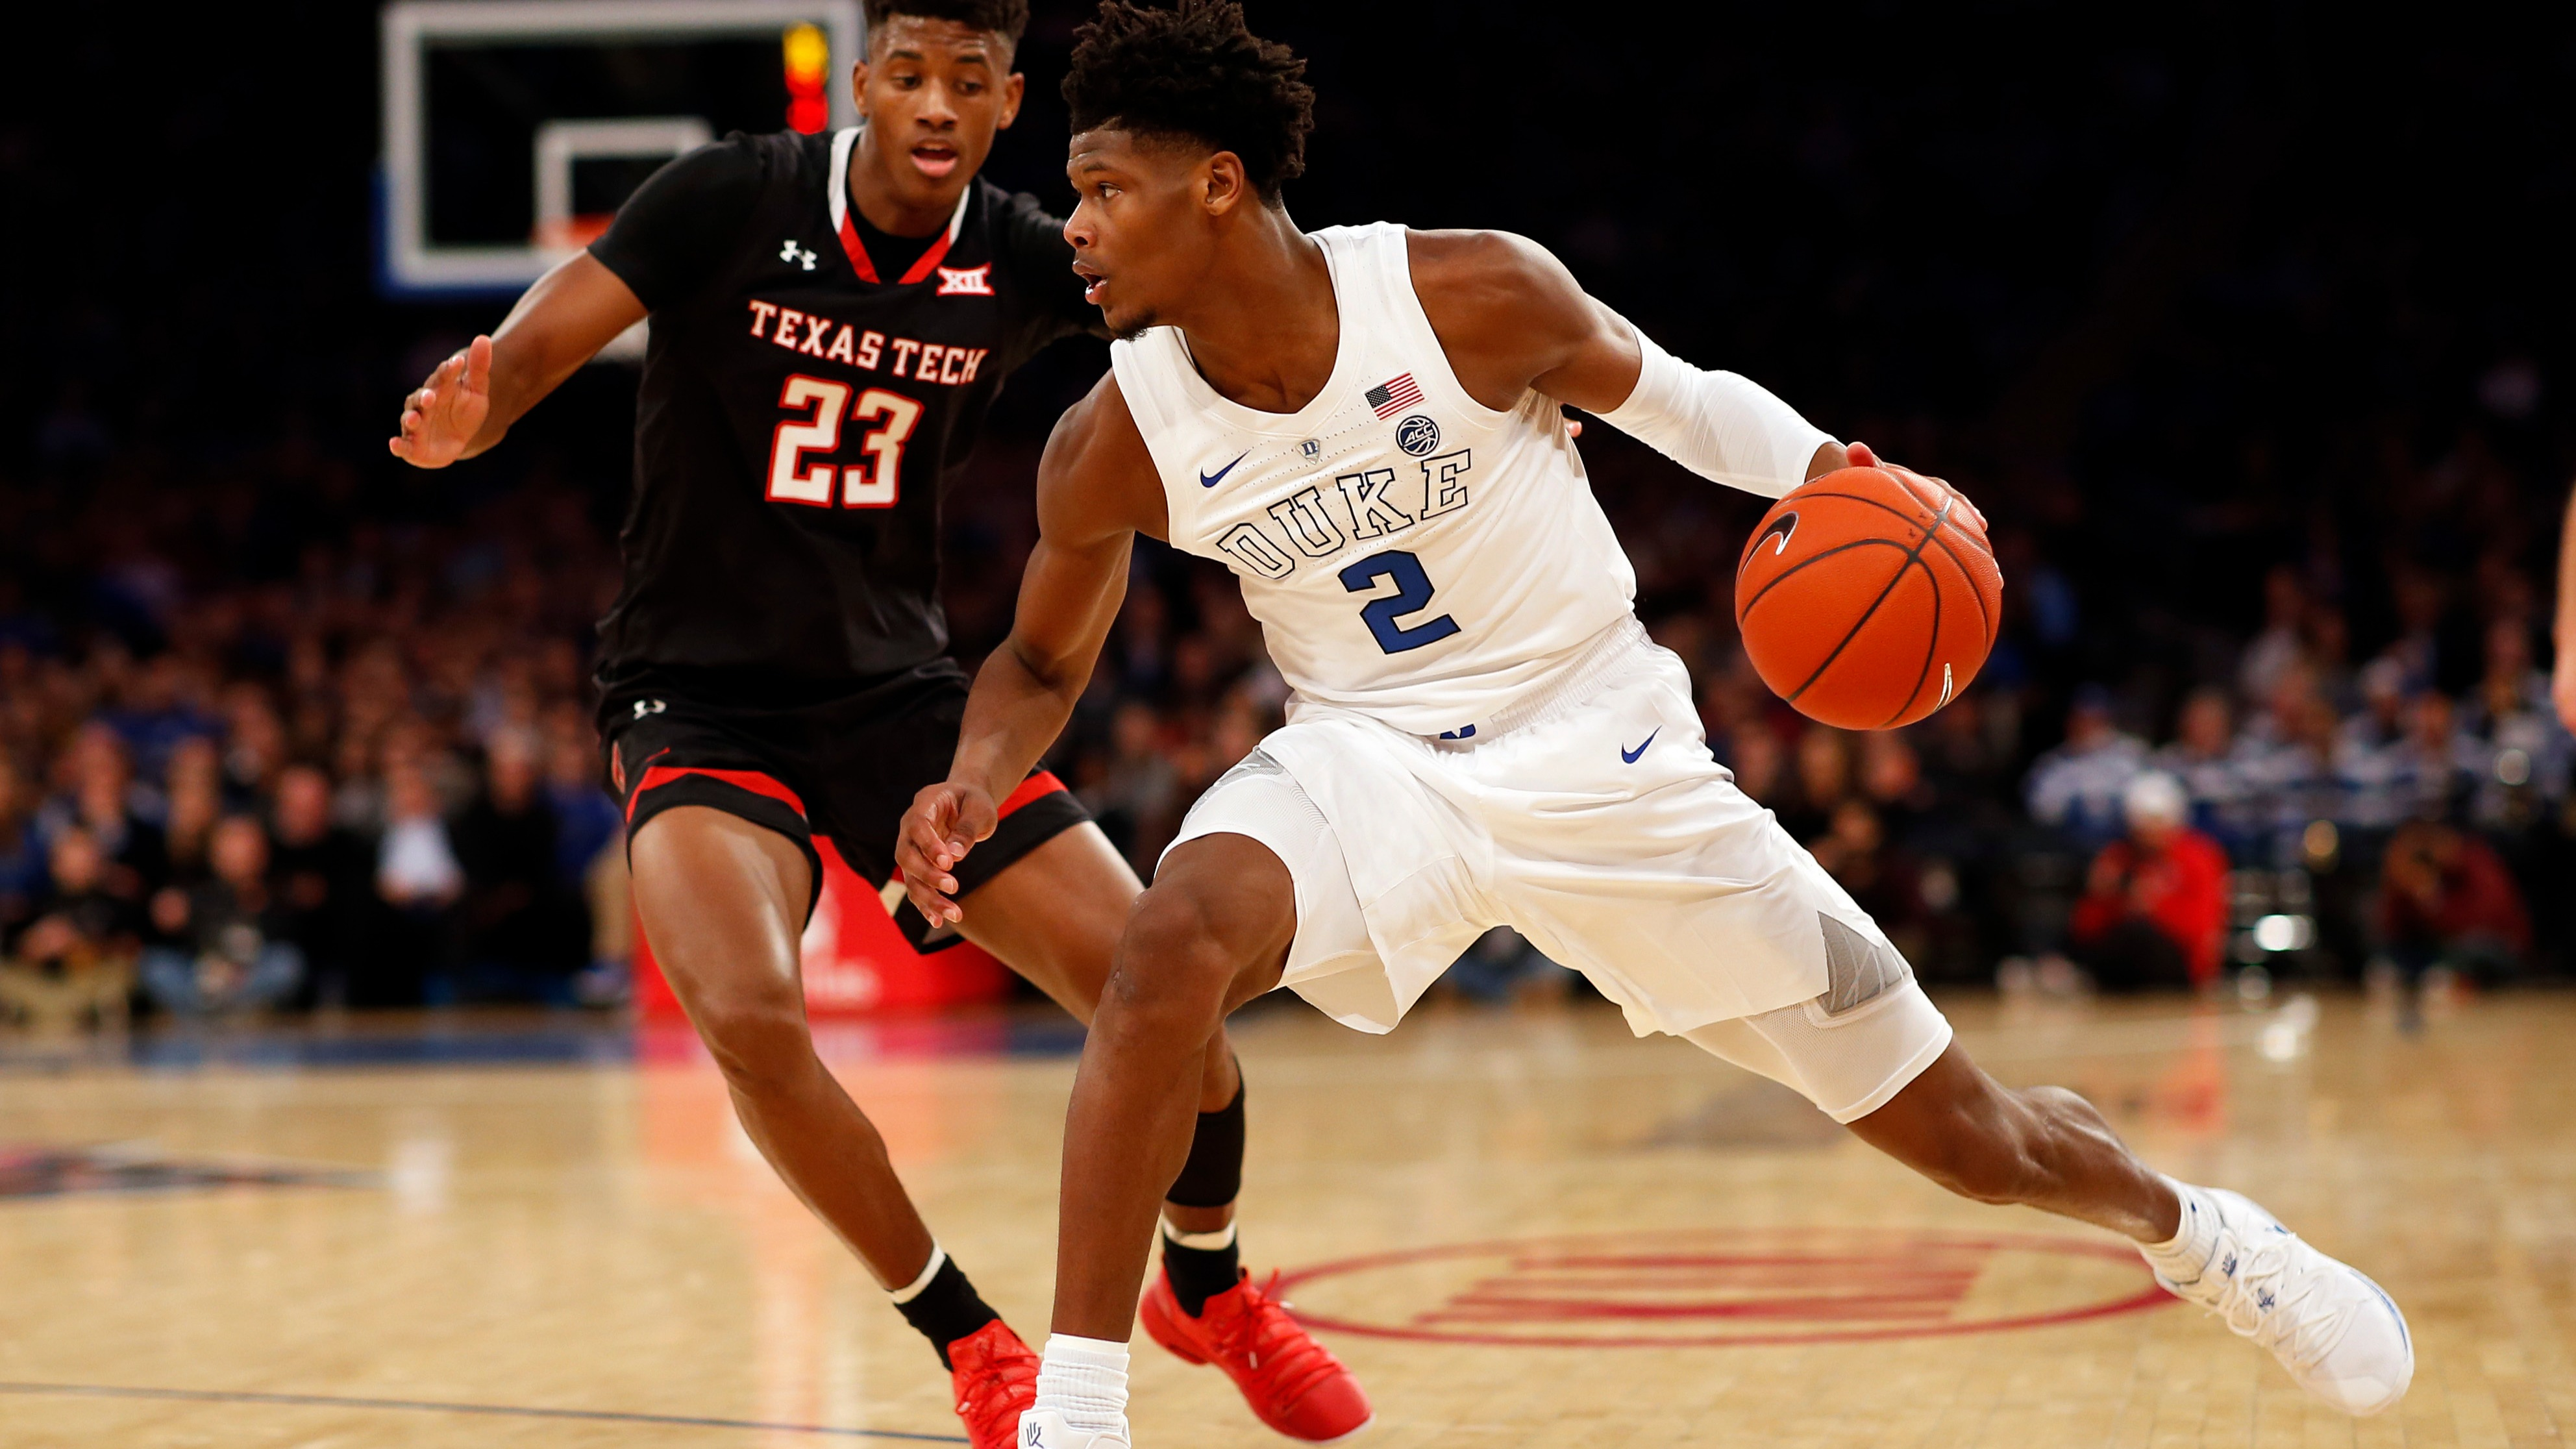 best website 16e07 f25c8 Duke is back on top of the AP Top 25 rankings but one Las Vegas oddsmaker  says the Blue Devils could be in trouble once ACC play begins next month  and ...